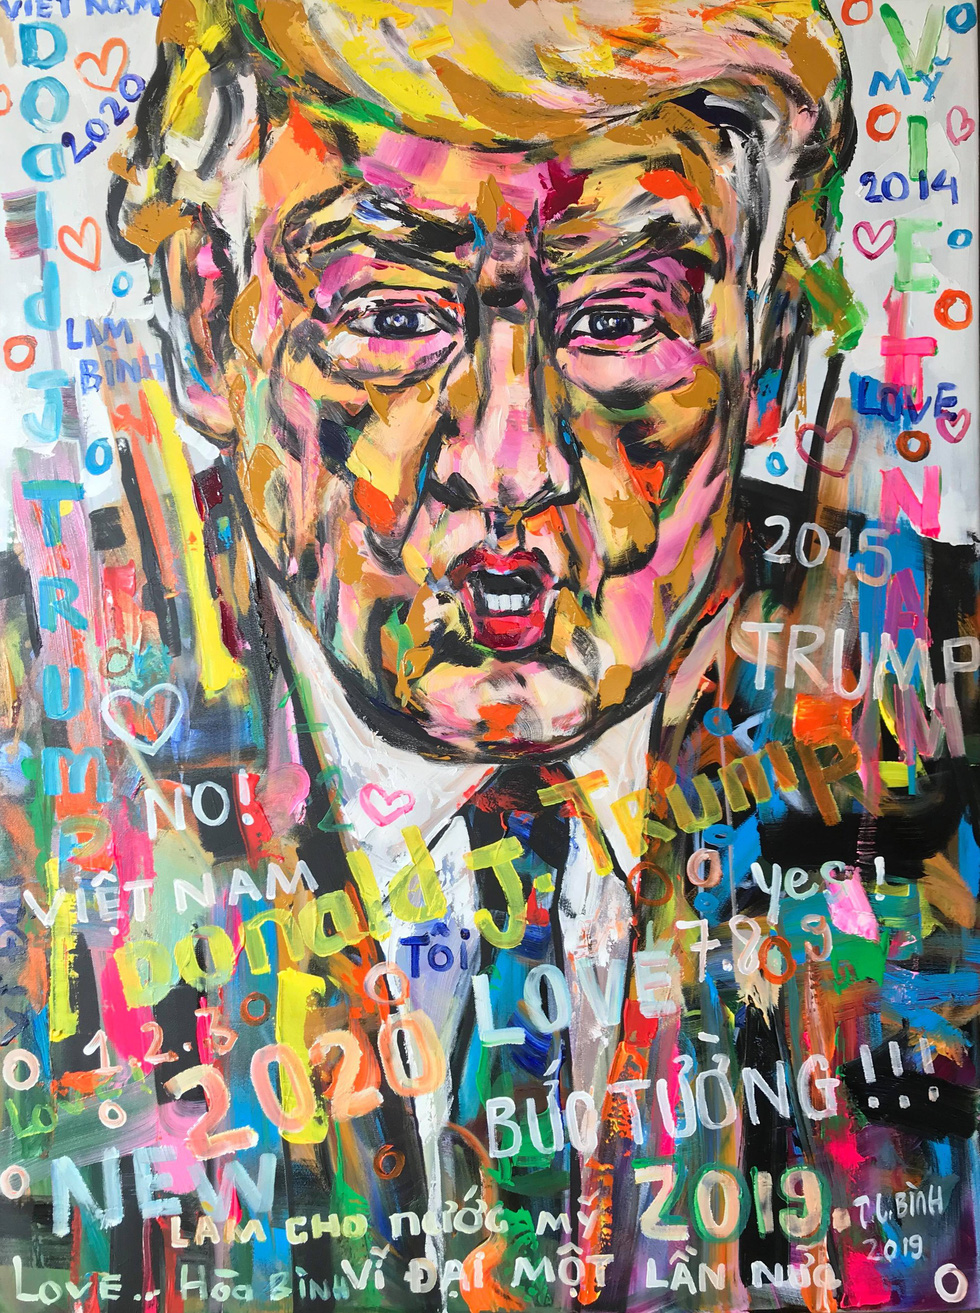 A portrait of U.S. President Donald Trump by Tran Lam Binh